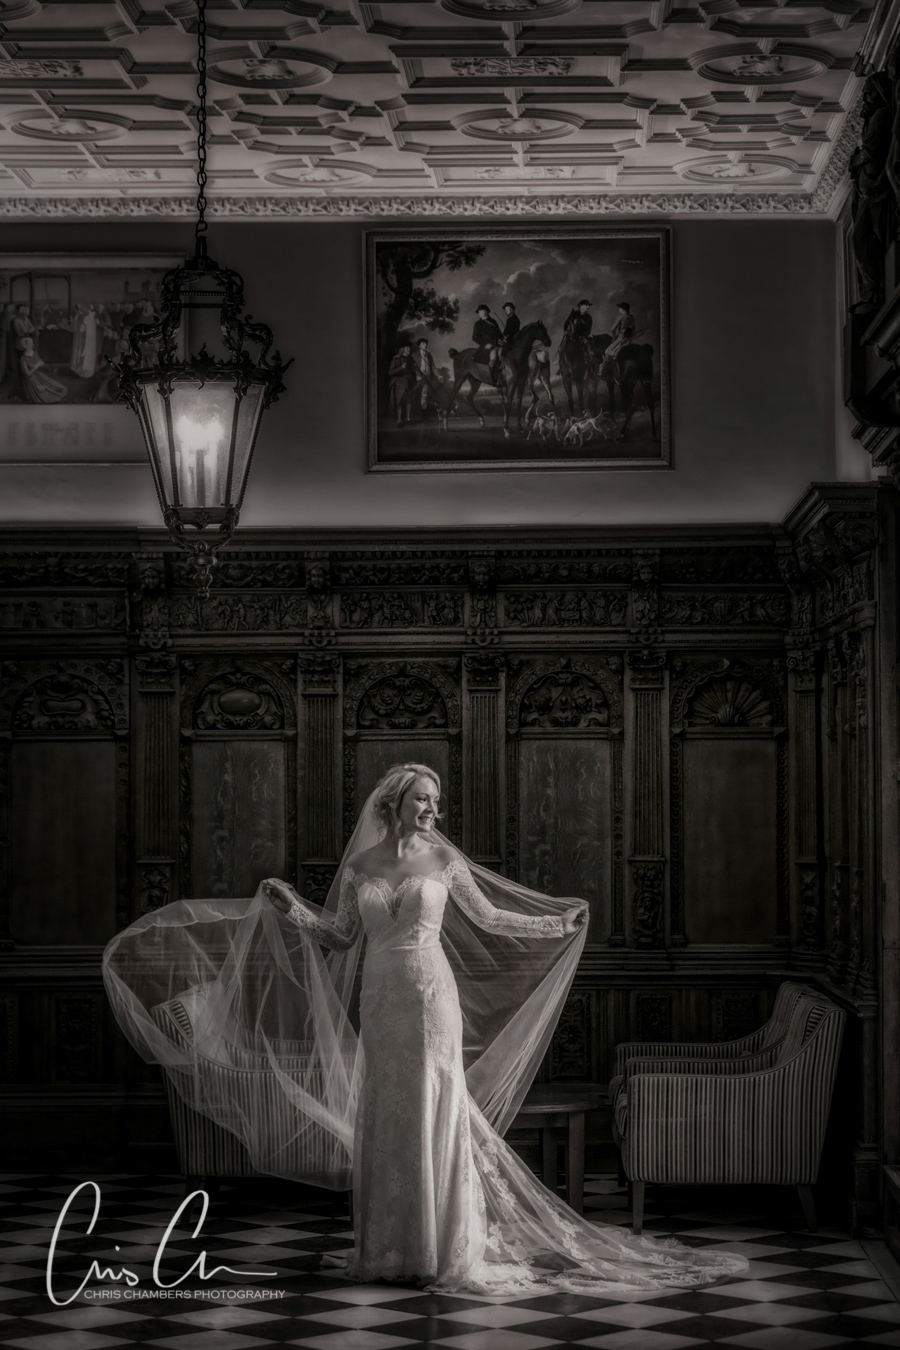 Hazlewood Castle wedding photograph, chris chambers wedding photographer. Bride in the flemish hall at hazlewood castle